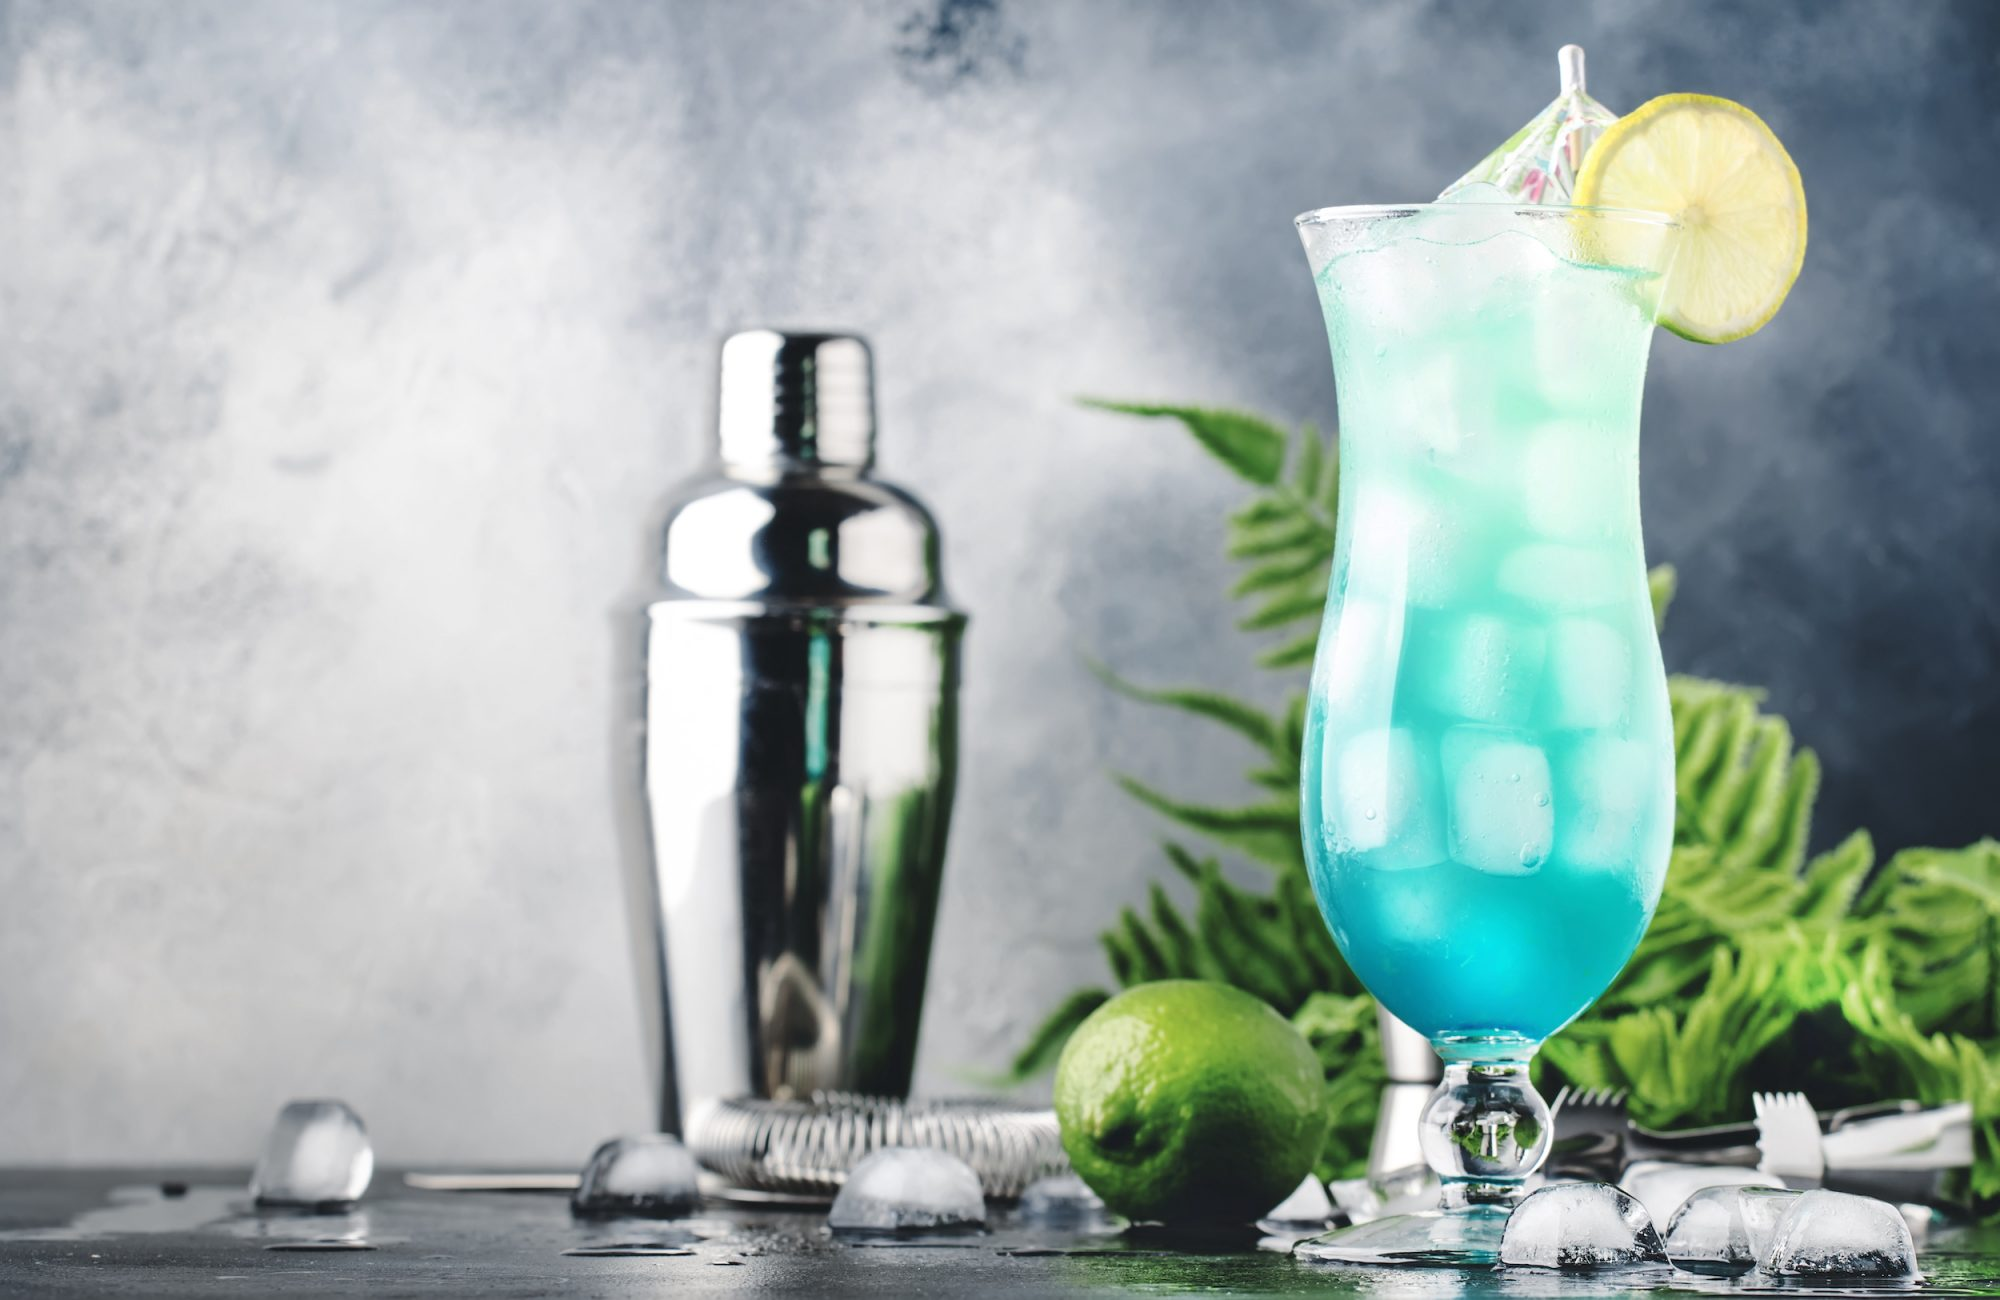 Cold drinks will make you feel hot.. Are hot drinks a better solution?